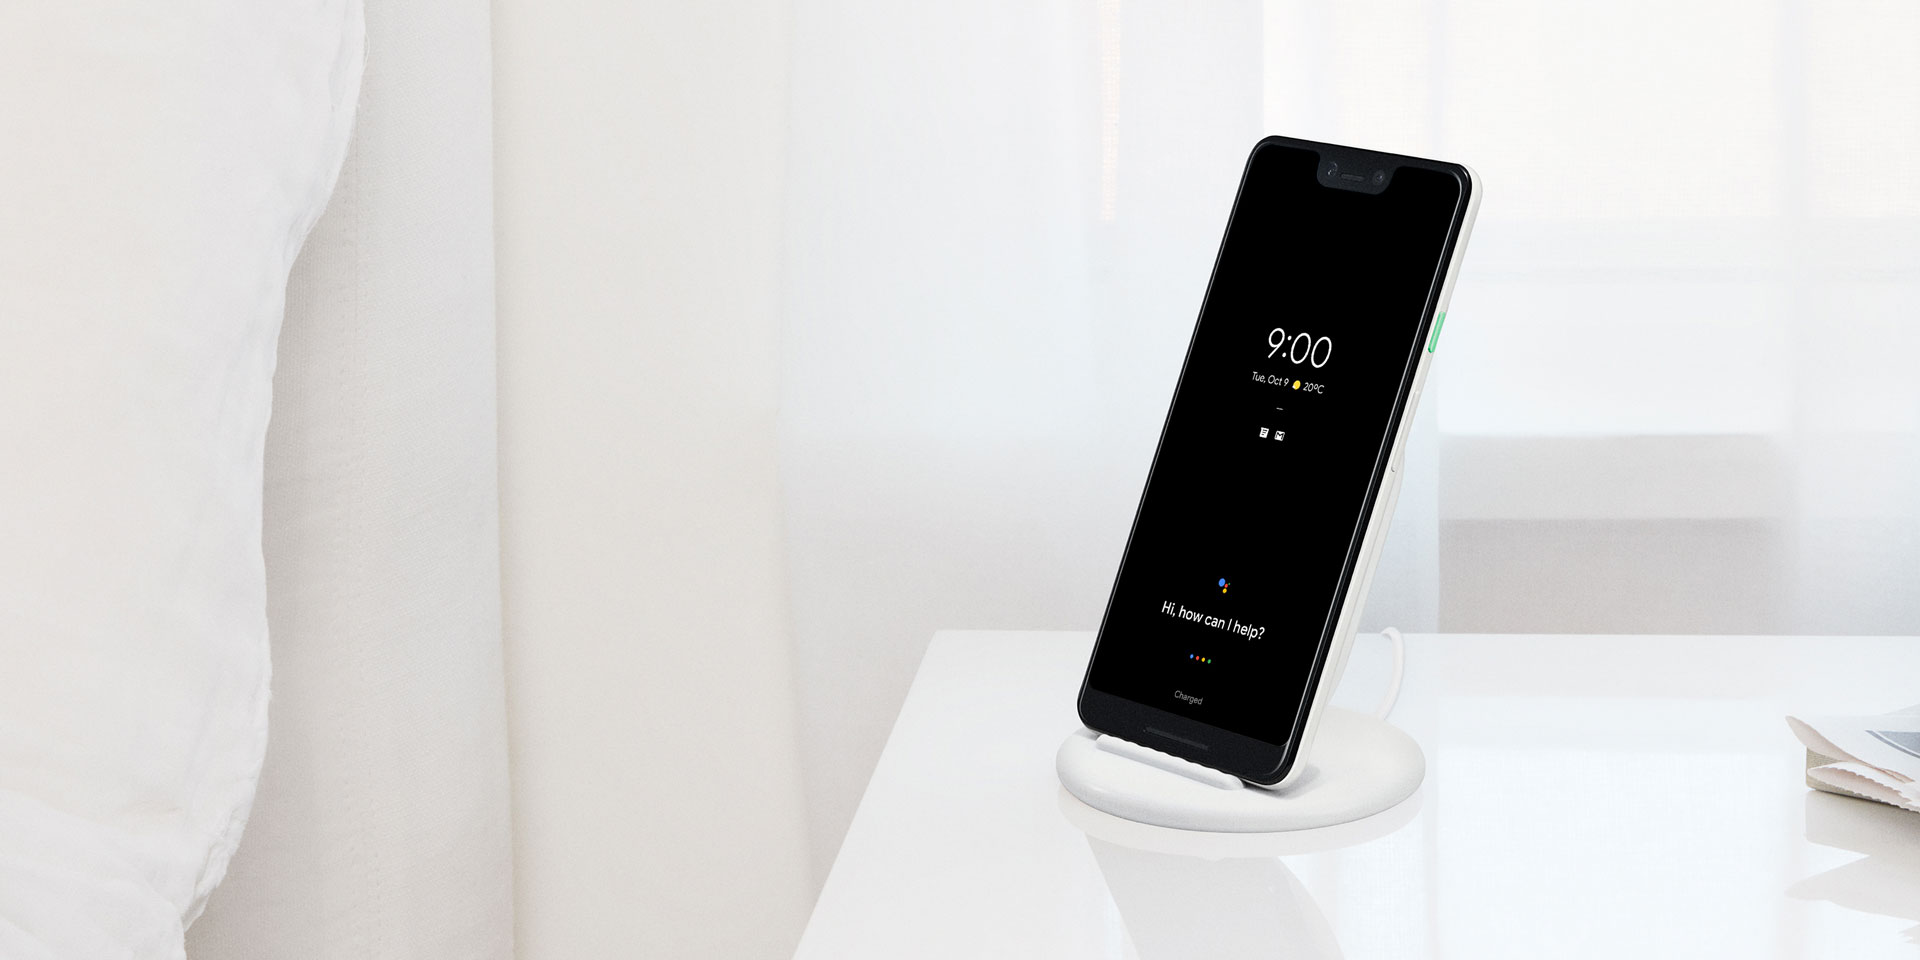 Charge the Pixel 3 and Pixel 3 XL wirelessly with the Google Pixel Stand.